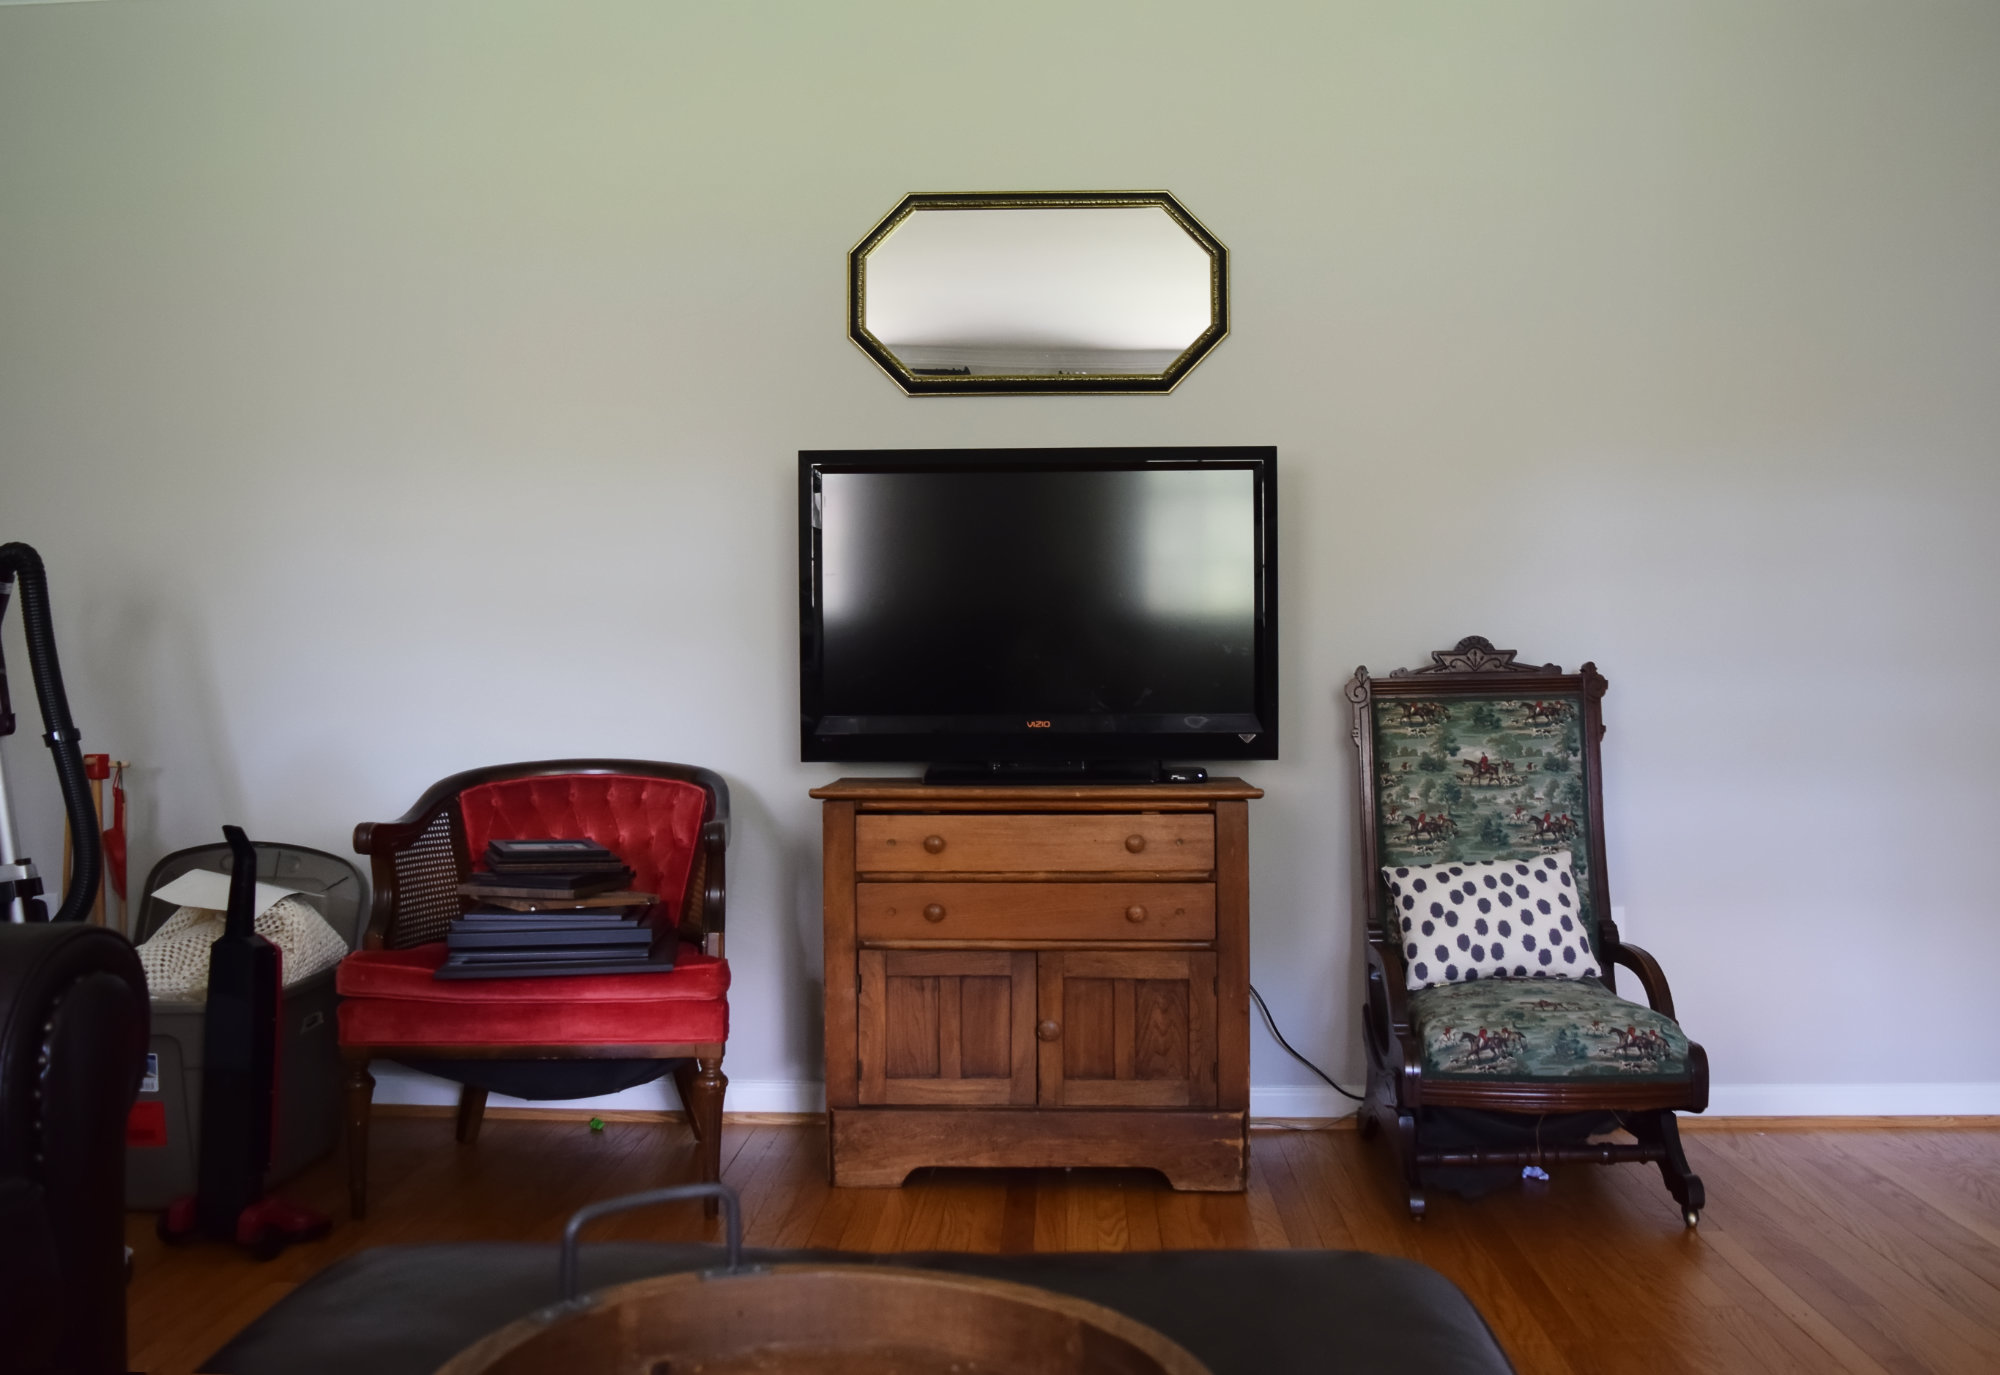 tv on old cabinet between red tufted cane chair and equestrian toile chair with polka dot pillow